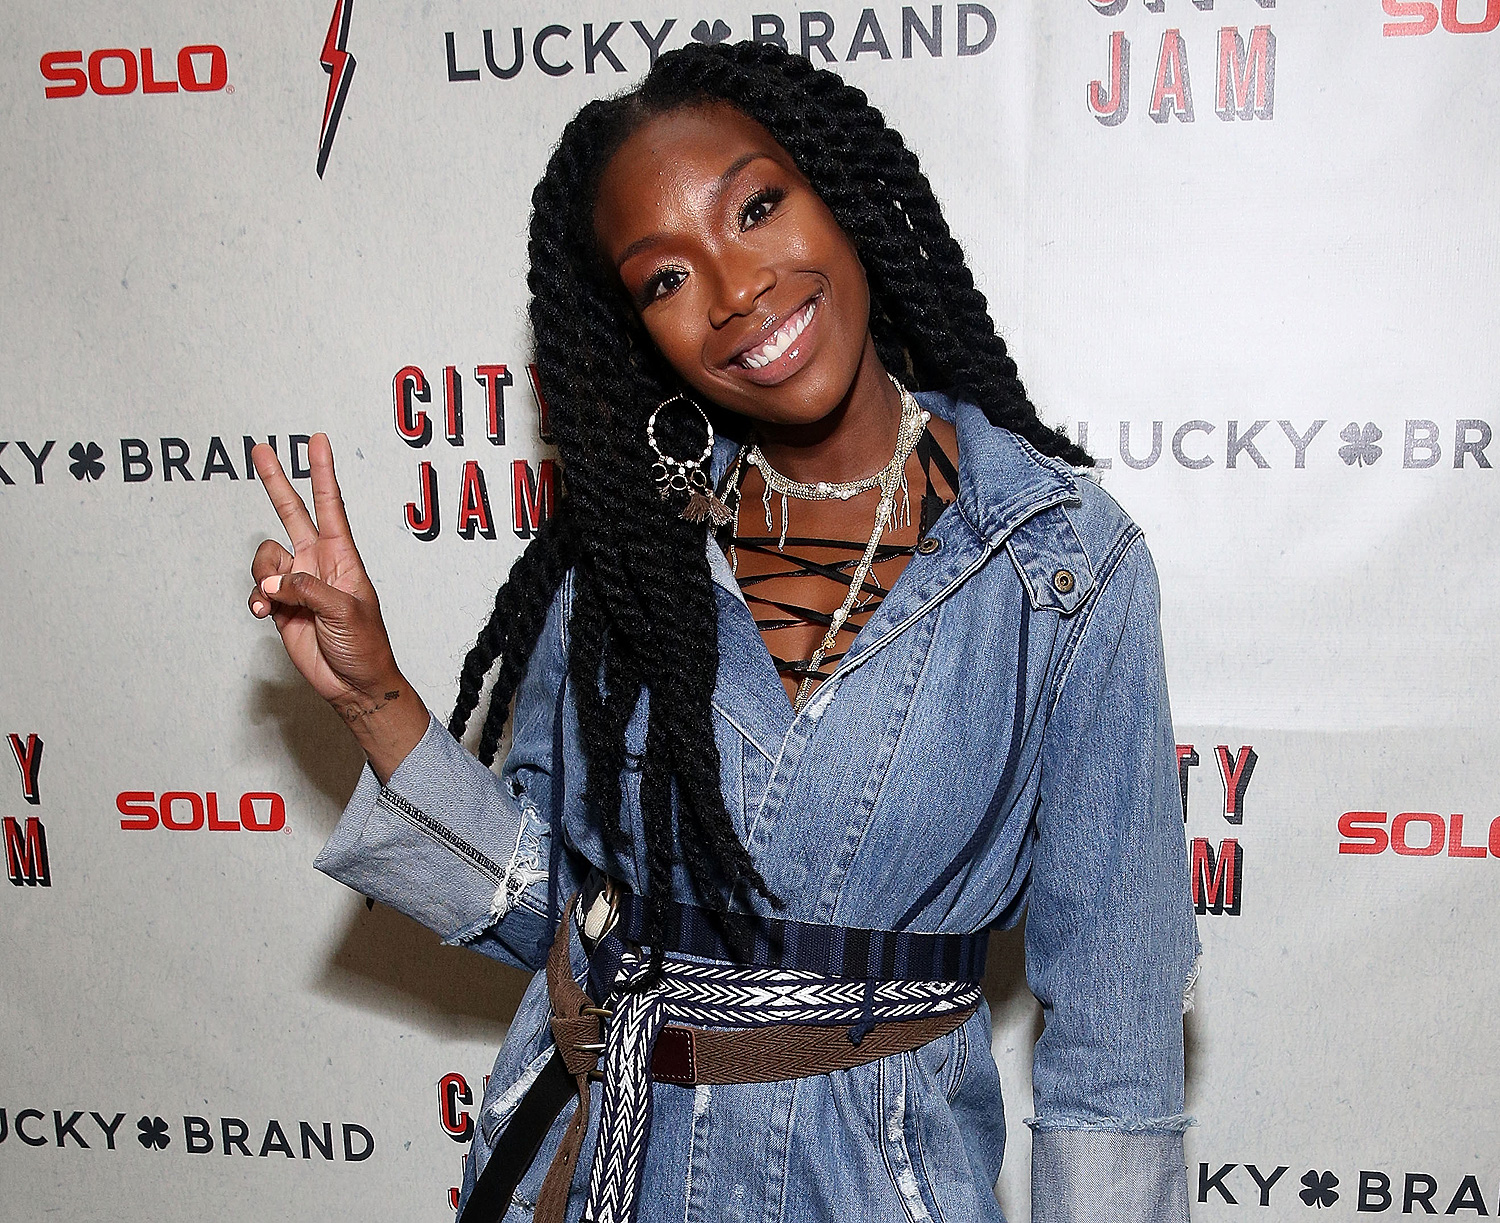 Lucky Brand Presents - Lucky Lounge: City Jam with Brandy